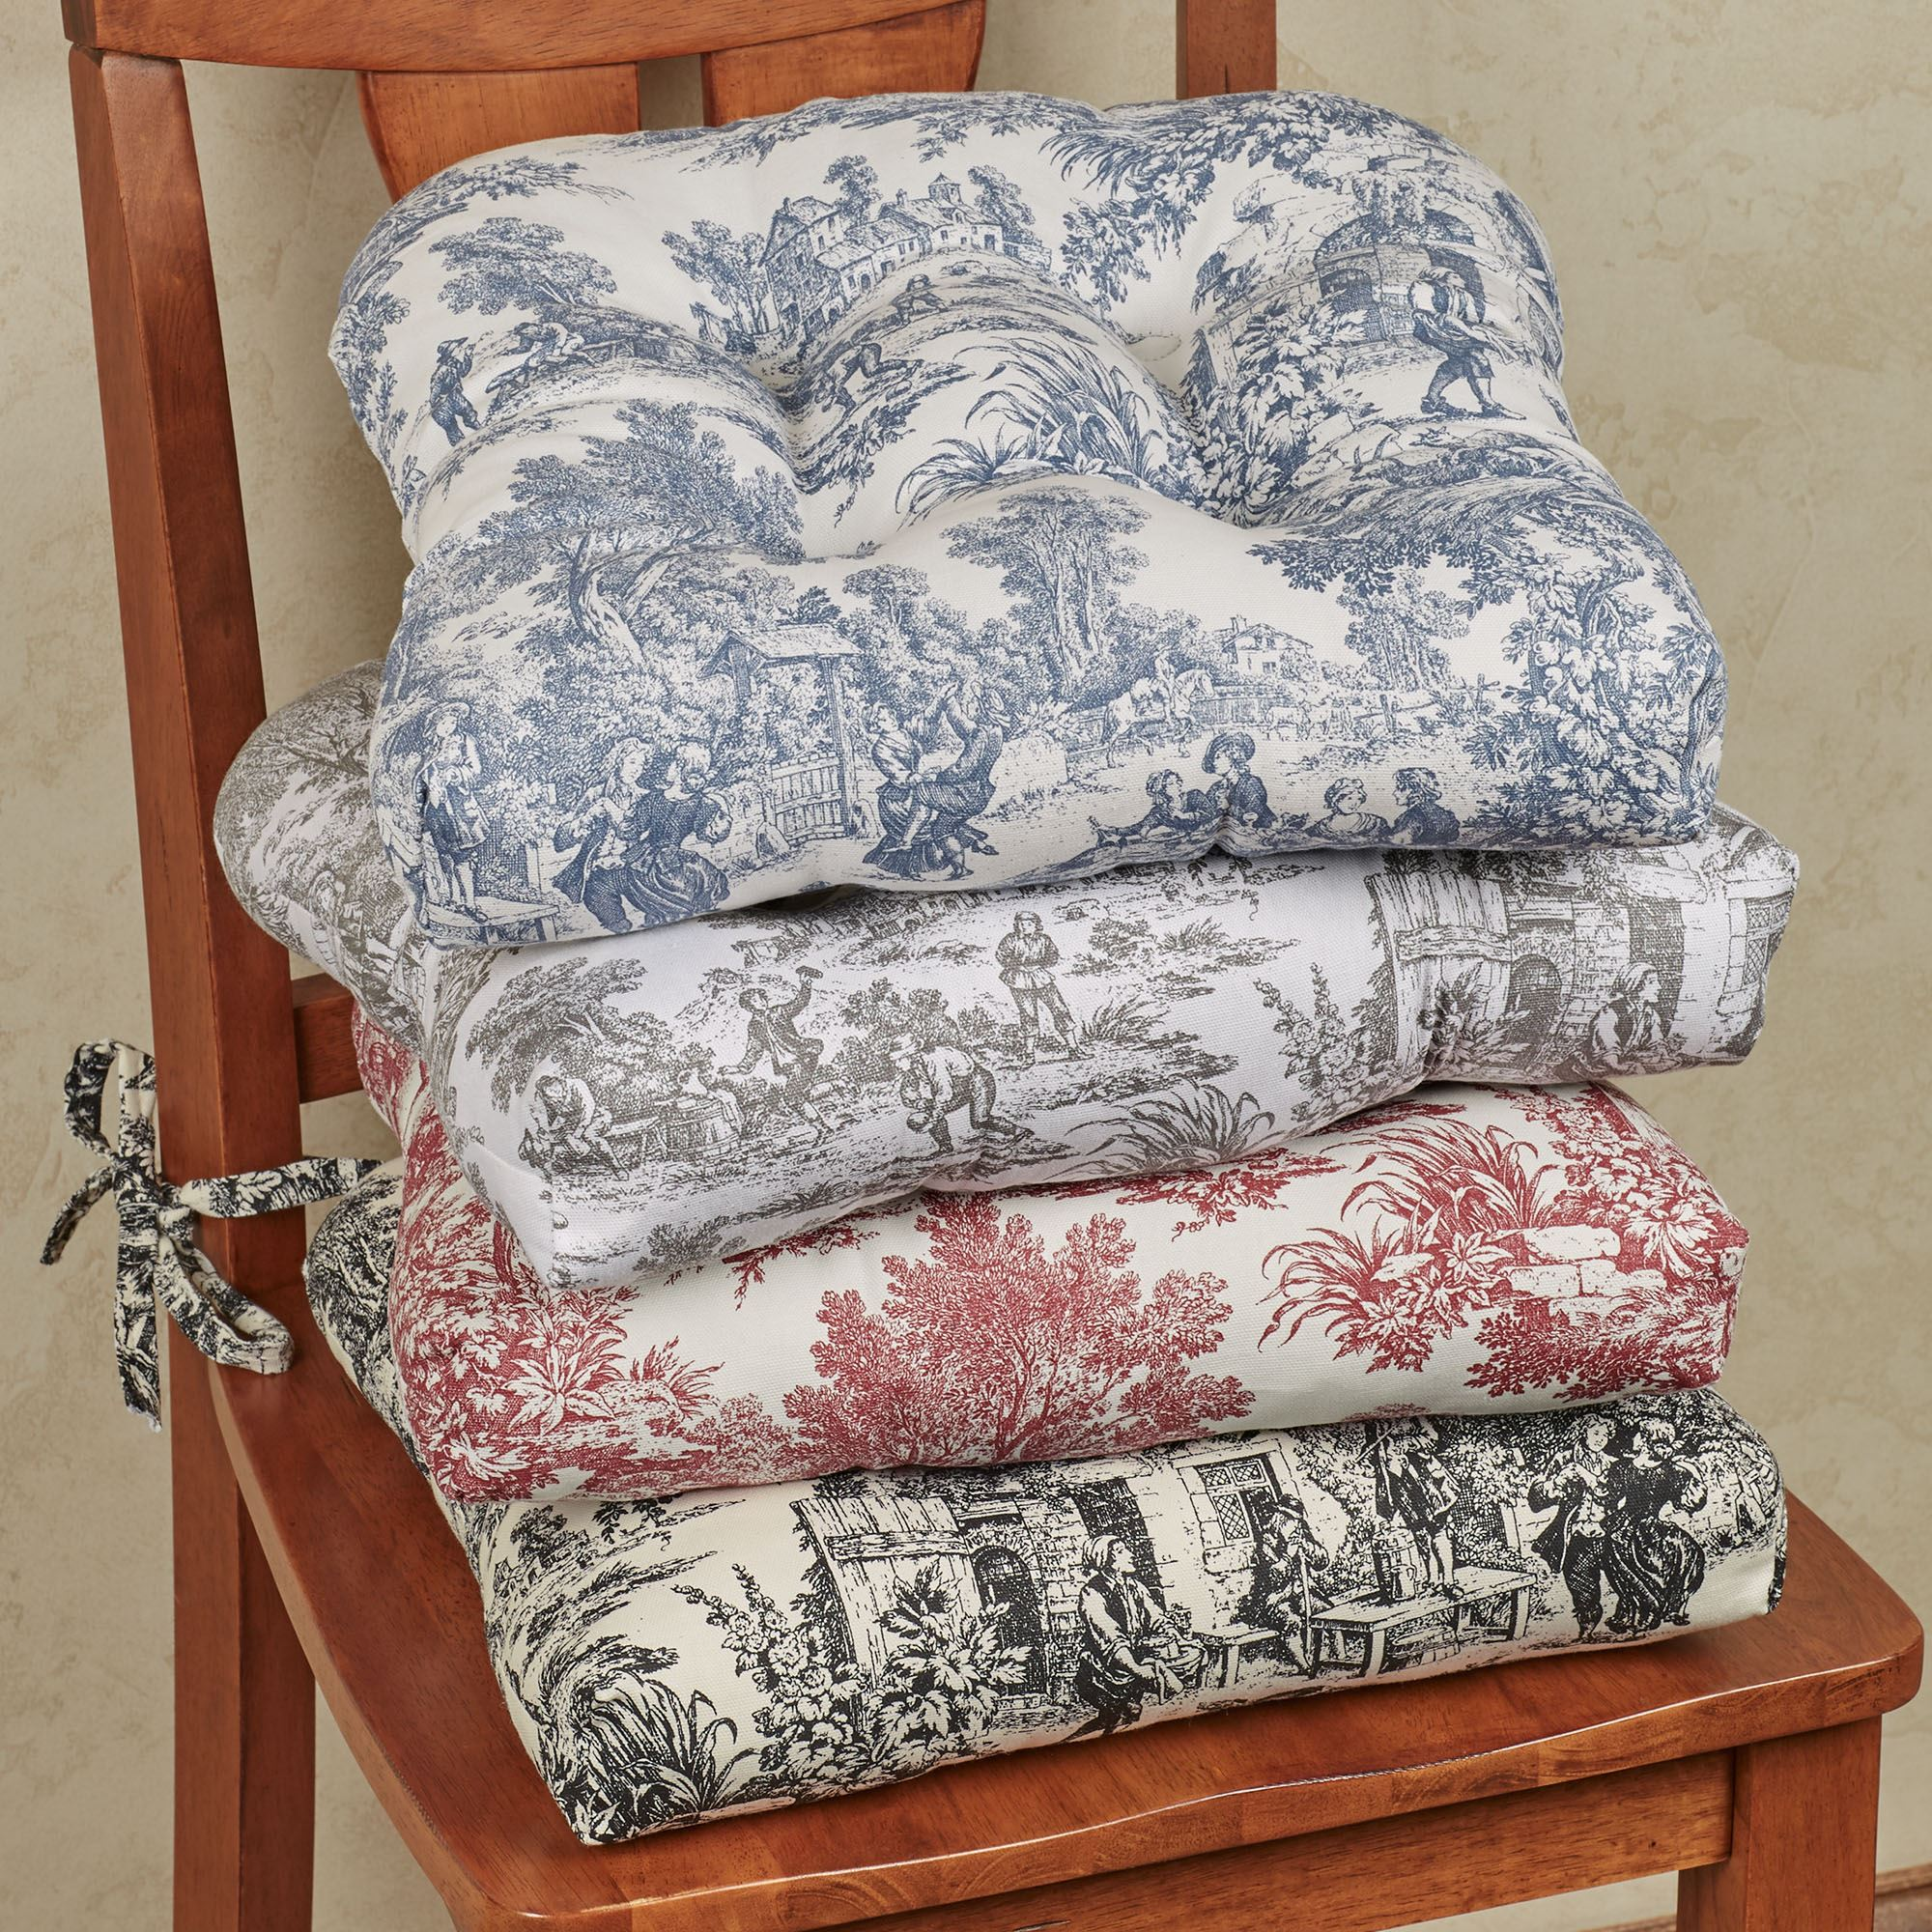 Exceptionnel Victoria Park Chair Cushion 15x14. Touch To Zoom